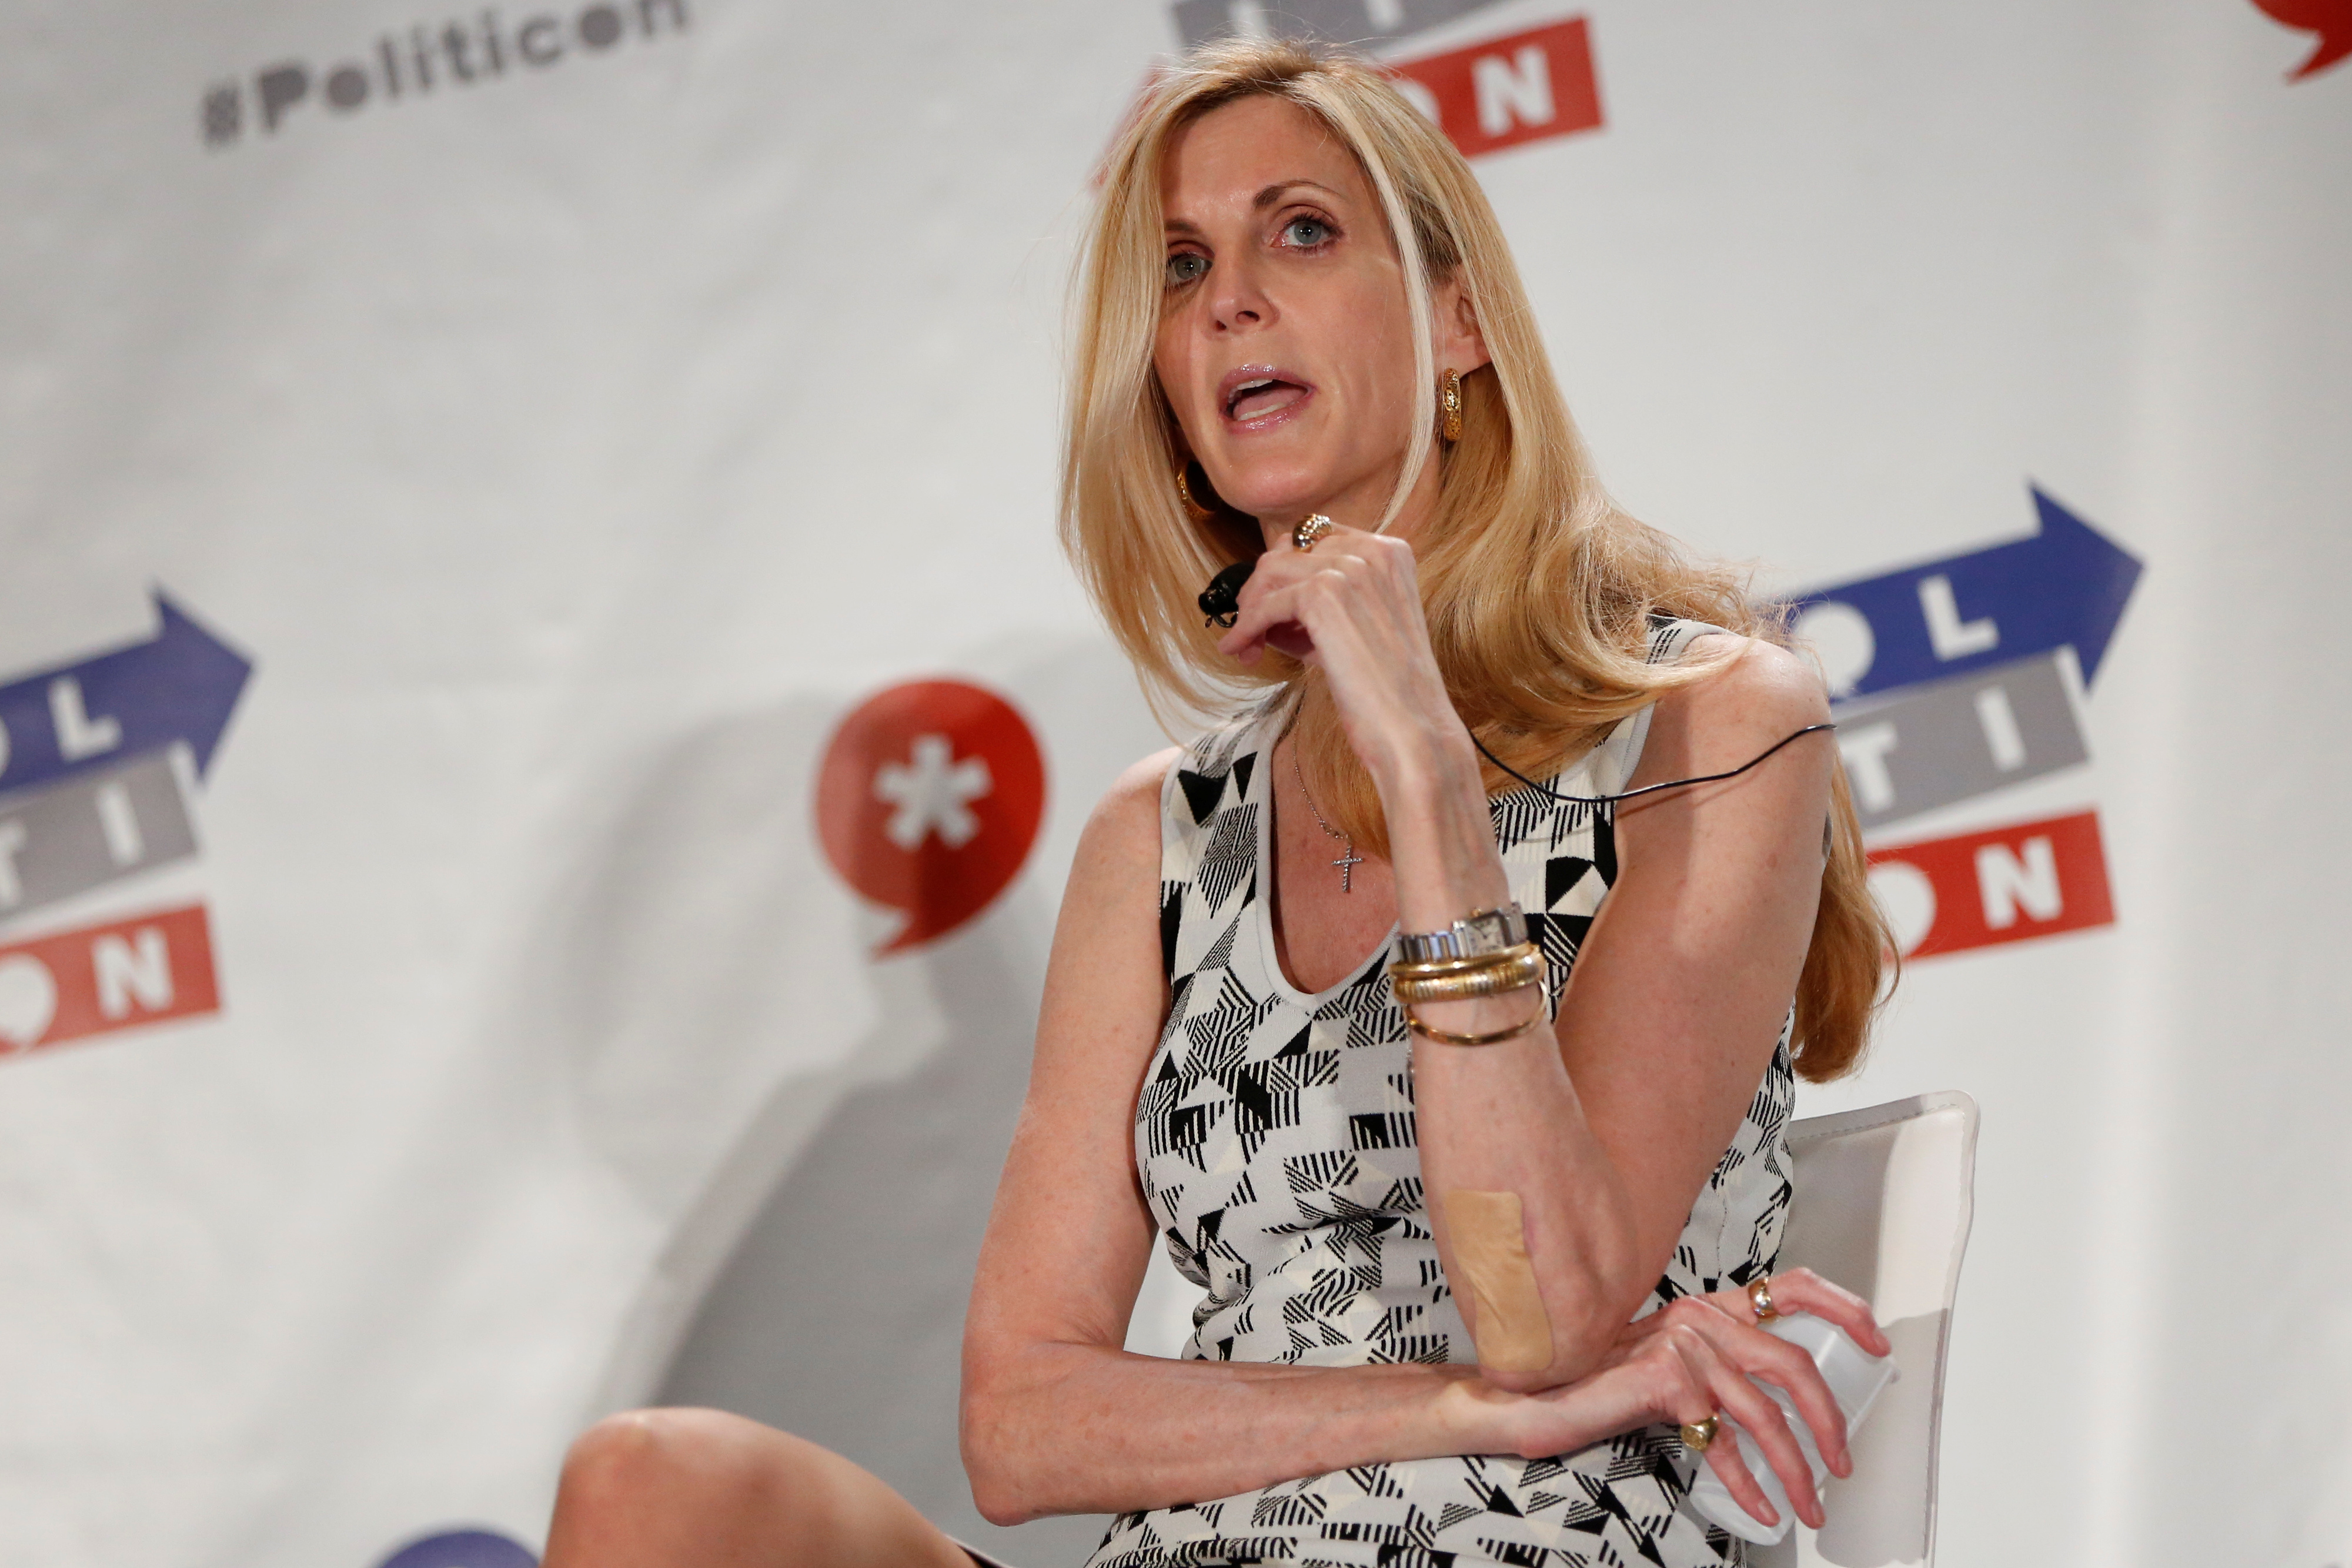 Ann Coulter right wing pundit speaks at conference